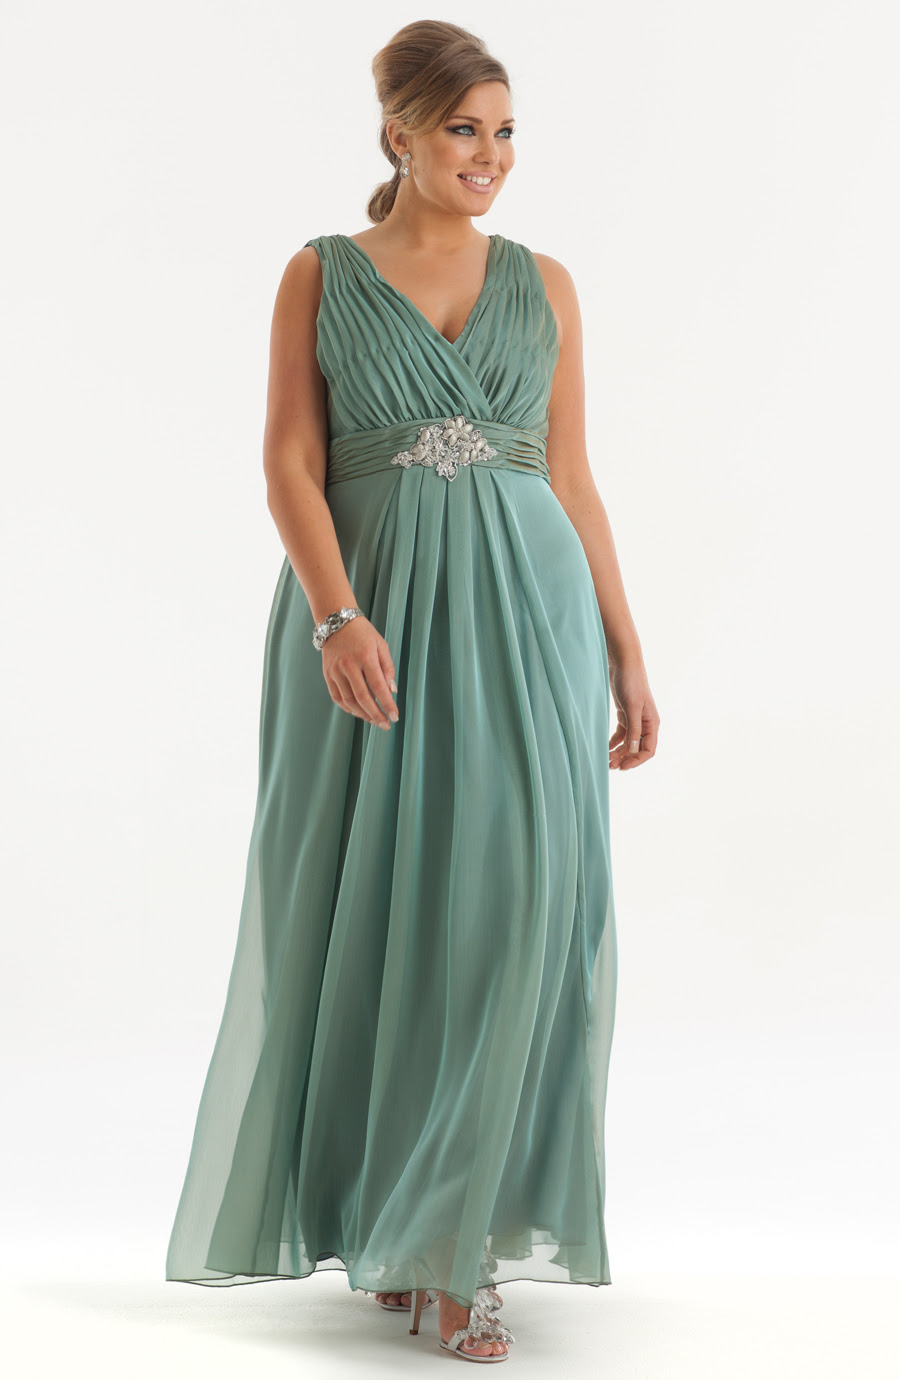 Plus size evening dresses on sale